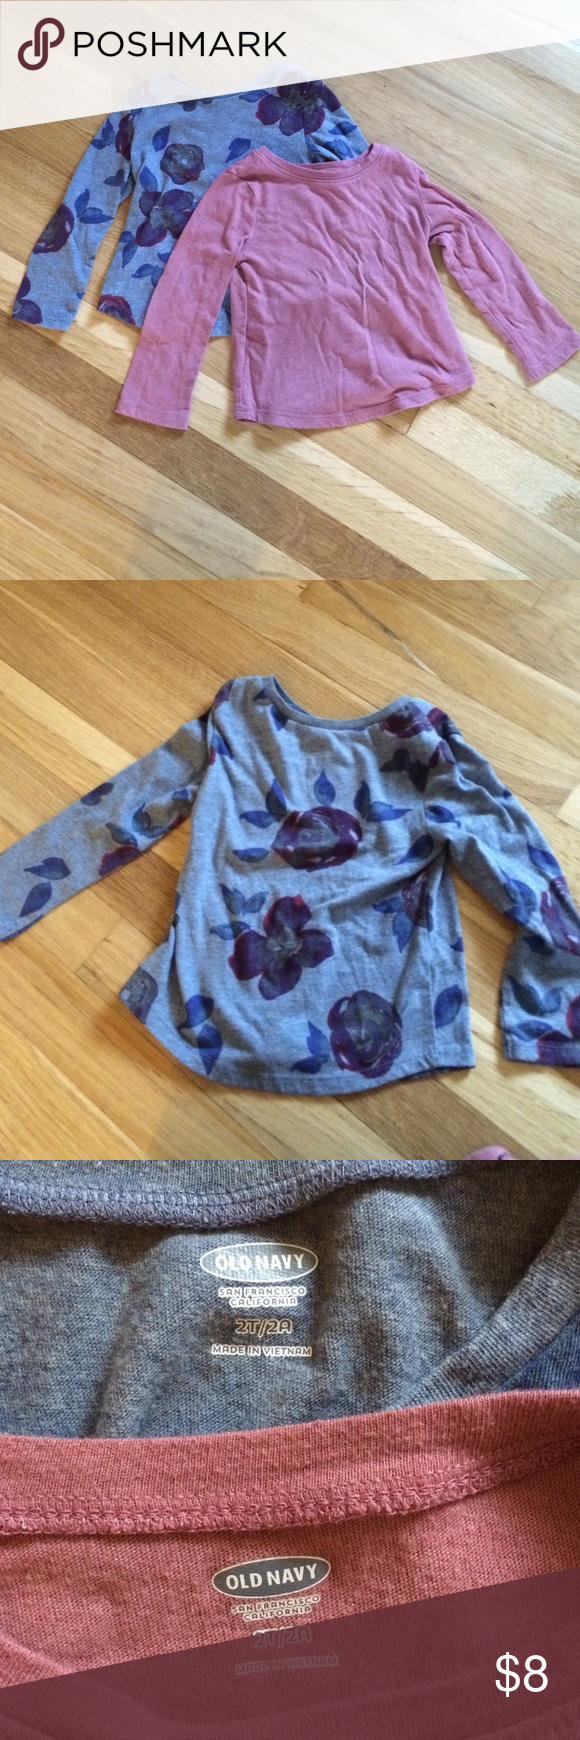 Bundle of 2 Old Navy long sleeve tees Soft cotton shirts for your little girl. They are in excellent condition and like all Old Navy, fit slim. Perfect for layering or wearing alone. These are a staple in our house. Old Navy Shirts & Tops Tees - Long Sleeve